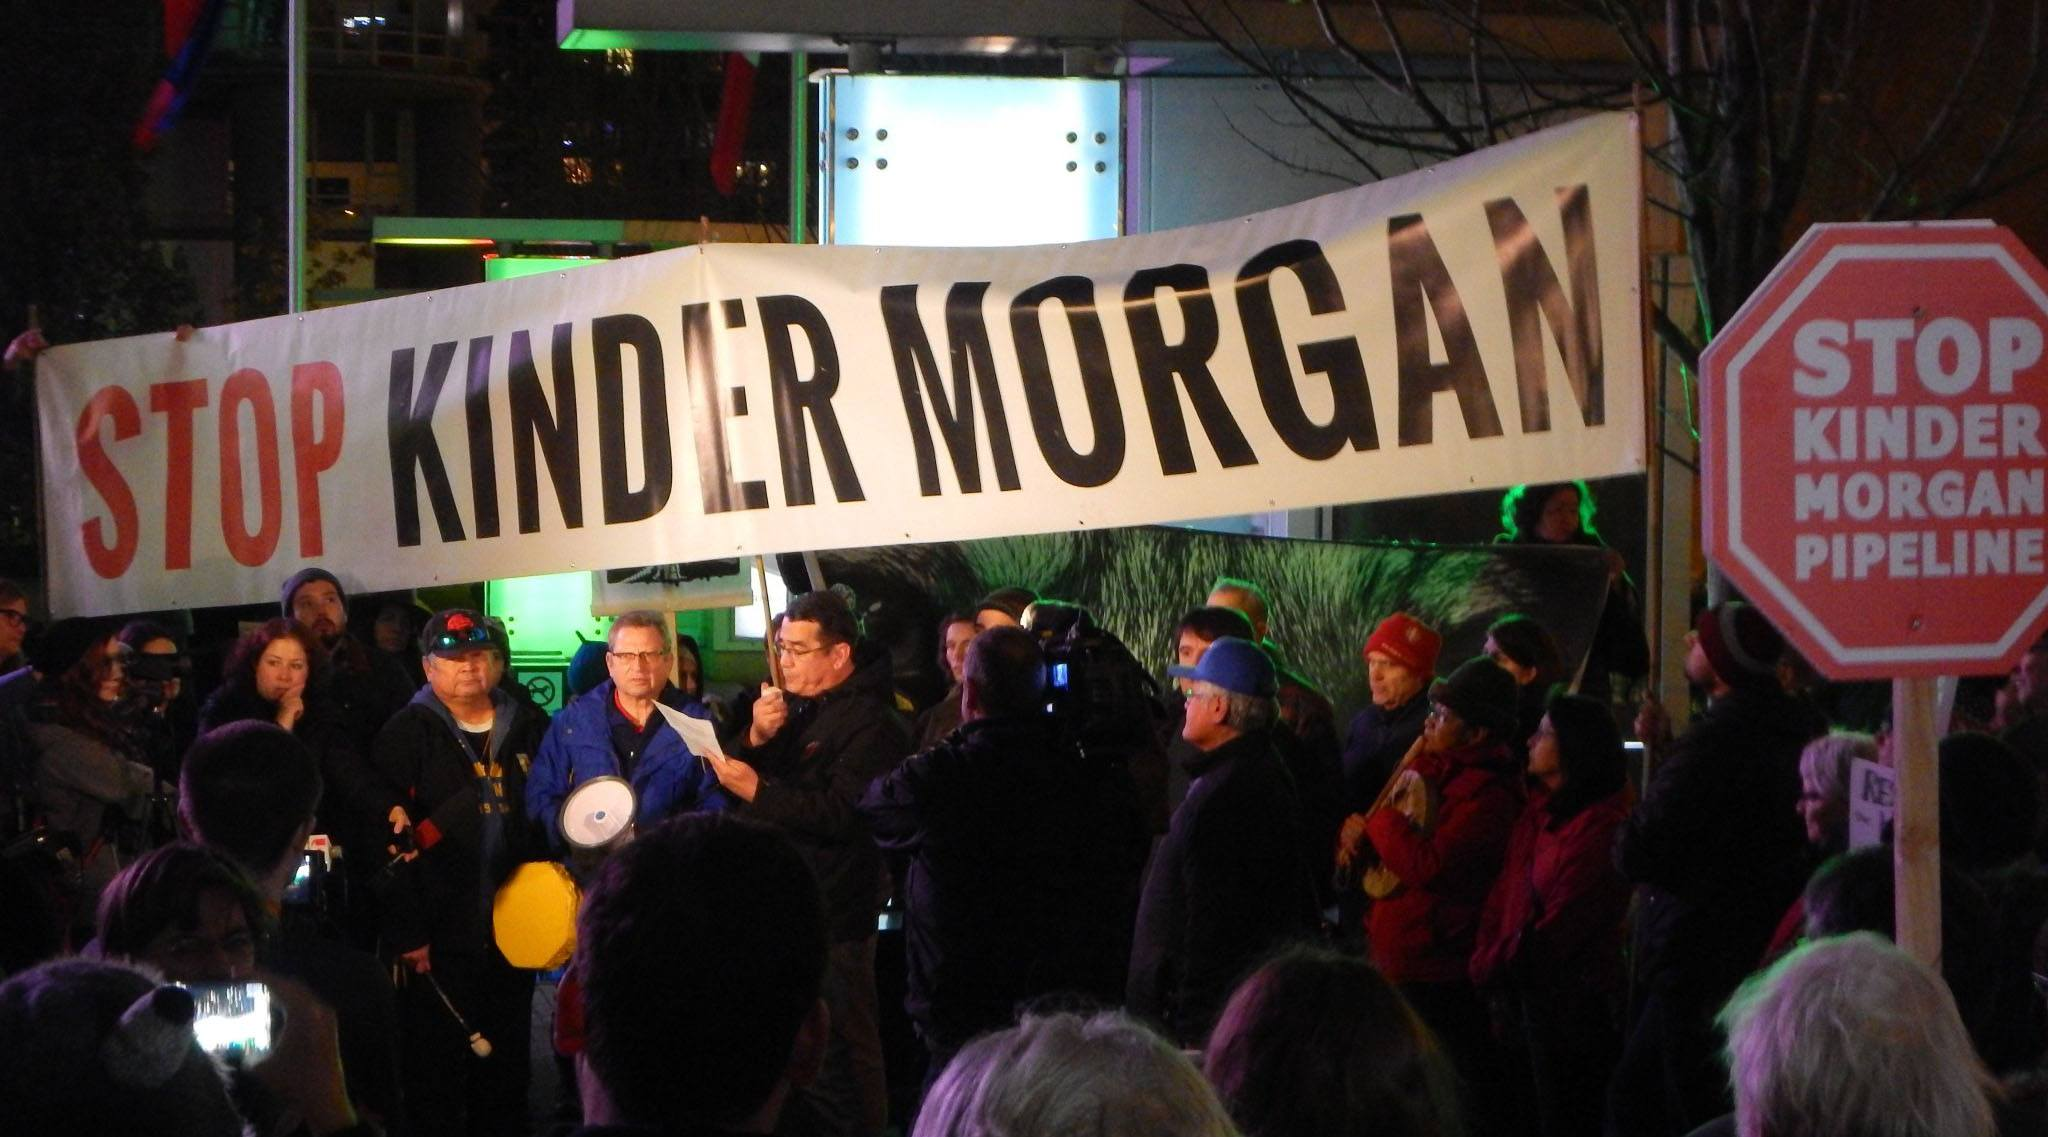 Monthly Kinder Morgan pipeline protests planned in Vancouver